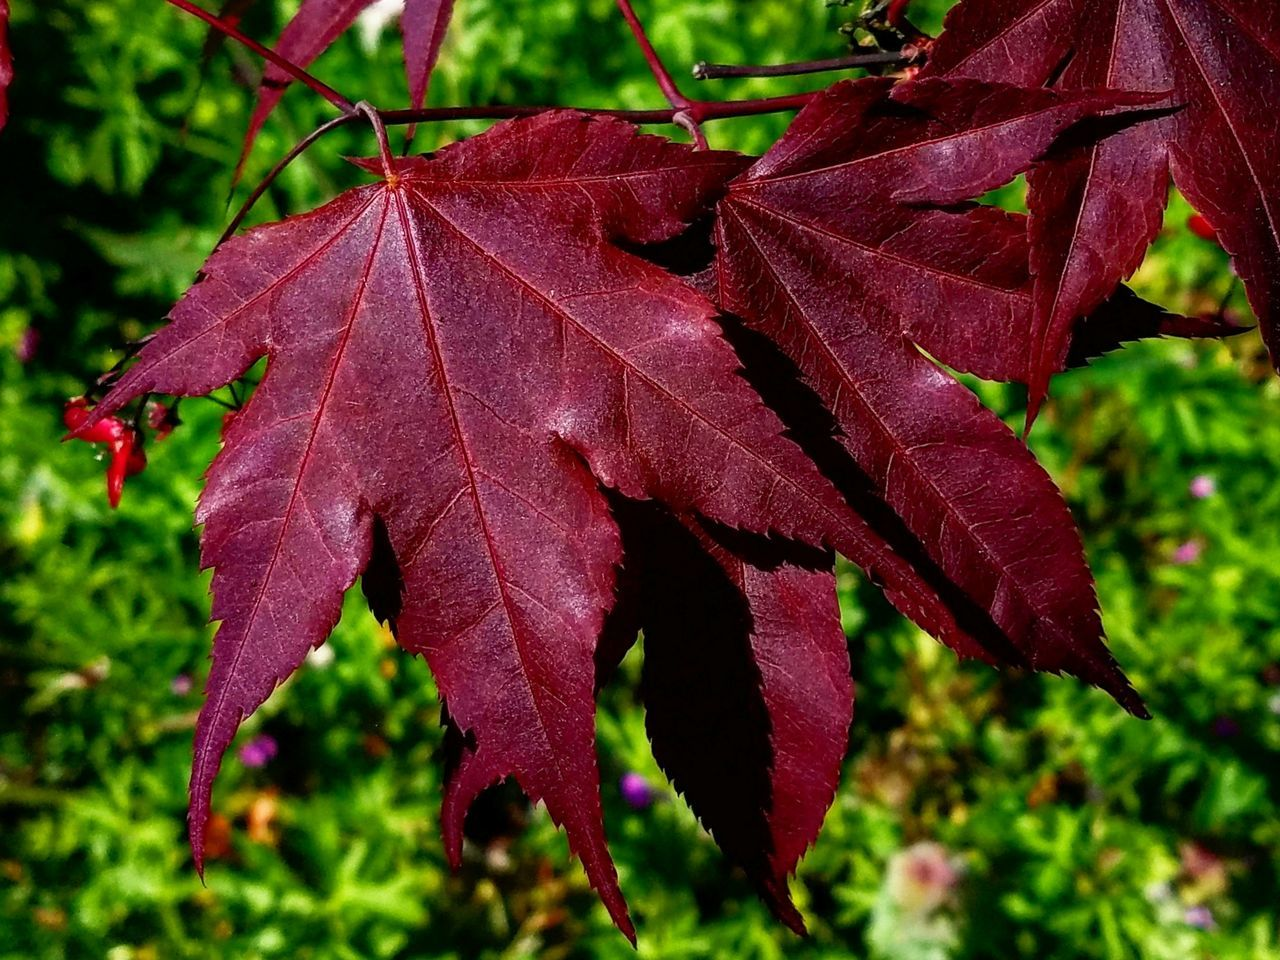 leaf, nature, focus on foreground, autumn, close-up, change, day, beauty in nature, fragility, outdoors, no people, plant, growth, maple, freshness